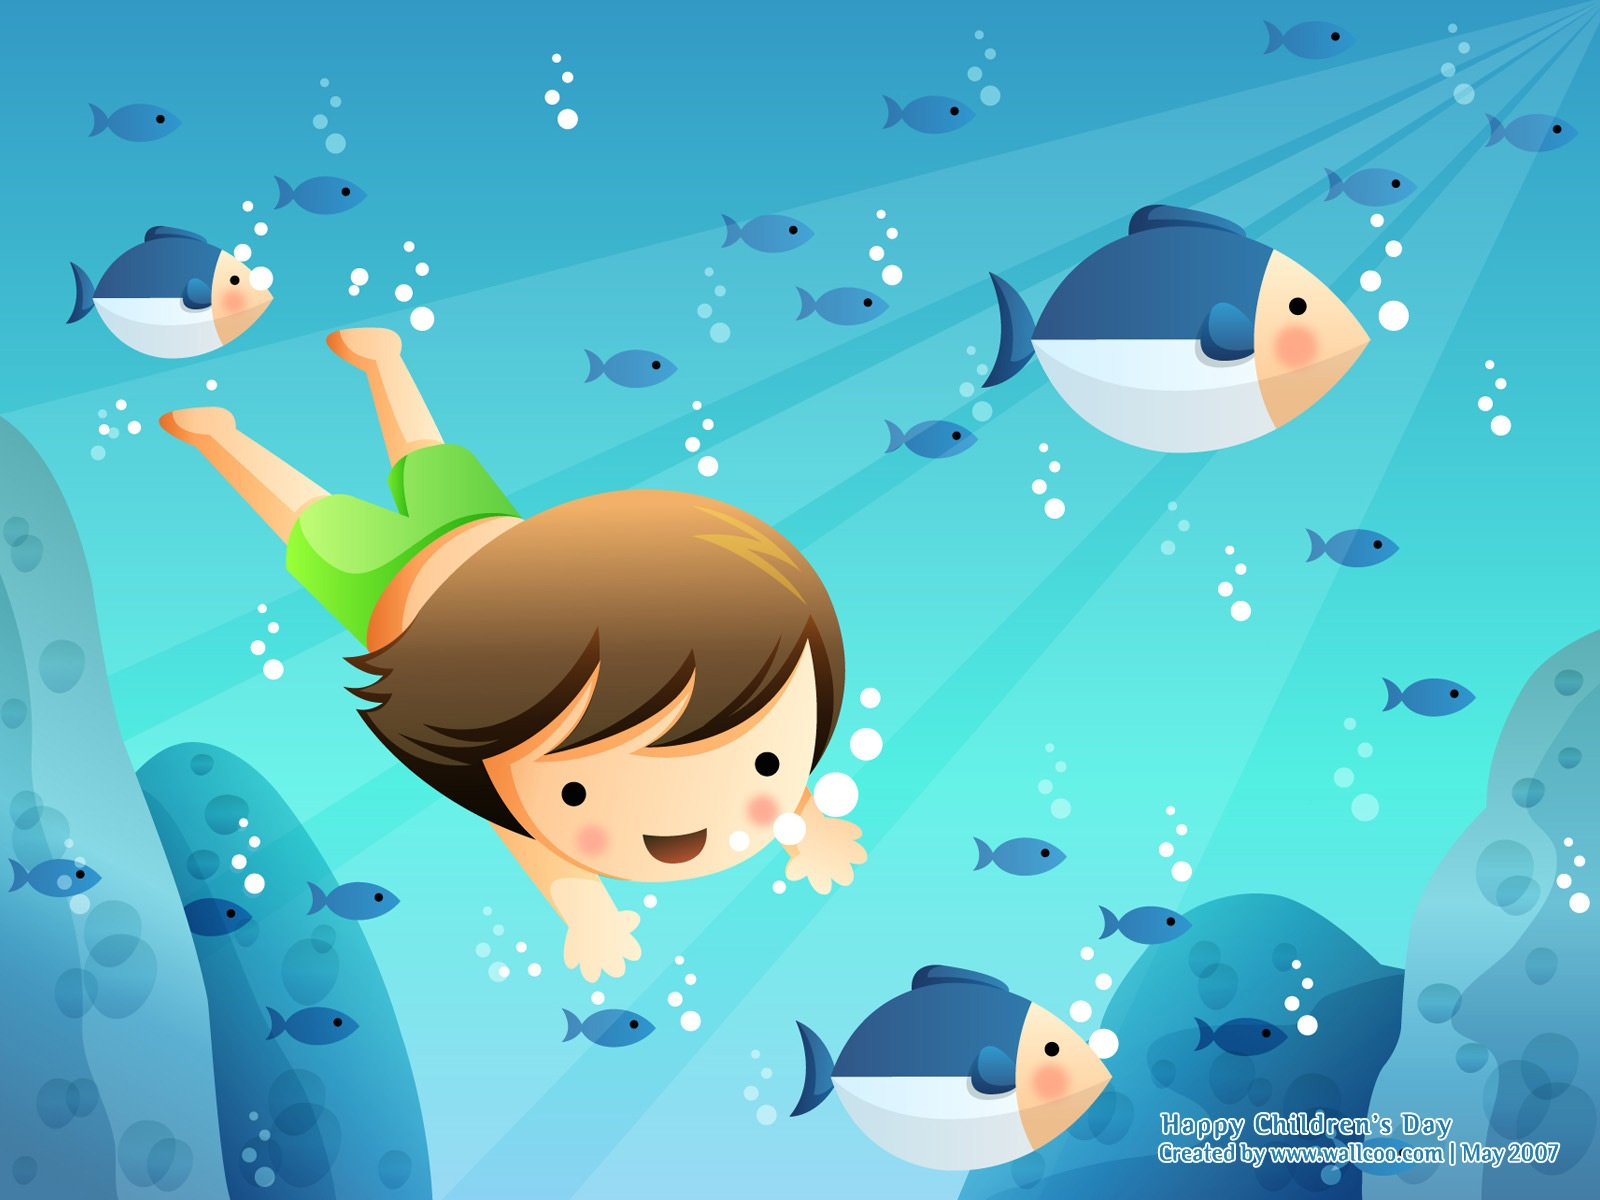 http://1.bp.blogspot.com/-TgrQHkj88FU/Tq5vYT95R7I/AAAAAAAADQs/bPNCvWyWhdc/s1600/Happy_Childrens_day_wishes_wallpapers_greetings_cards_kids_fun_cartoon_celebration_2011.jpg